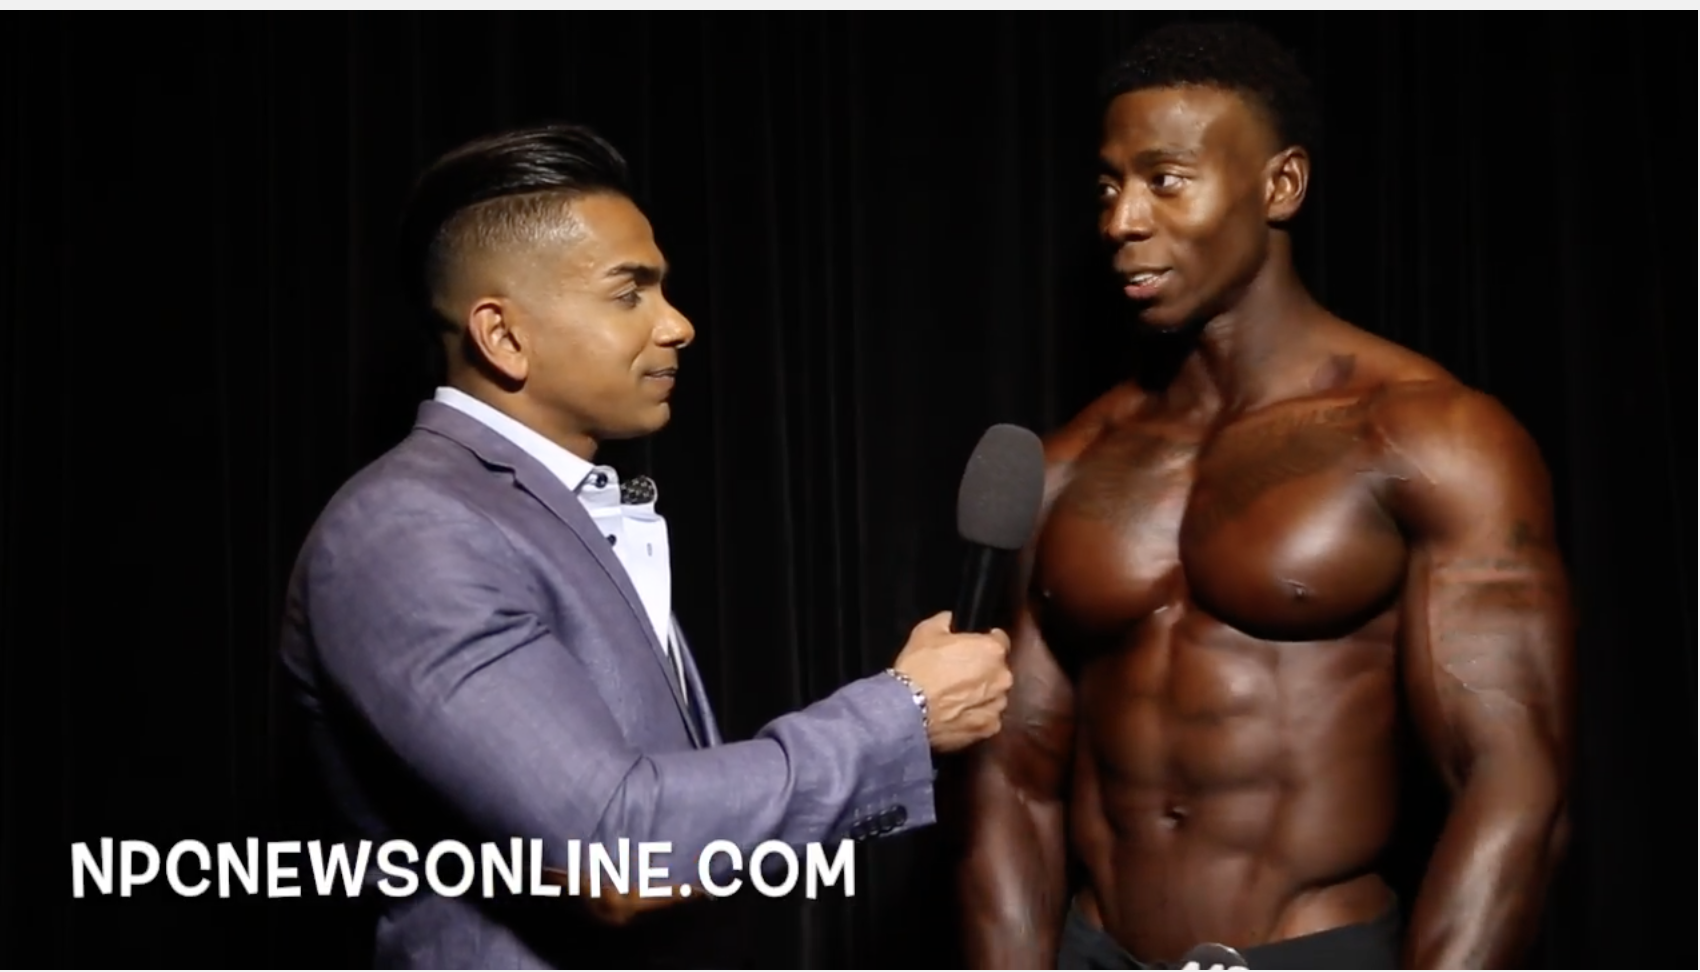 2017 NPC USA Men's Physique Overall Winner Kyron Holden Interviewed By Freddy Mac.